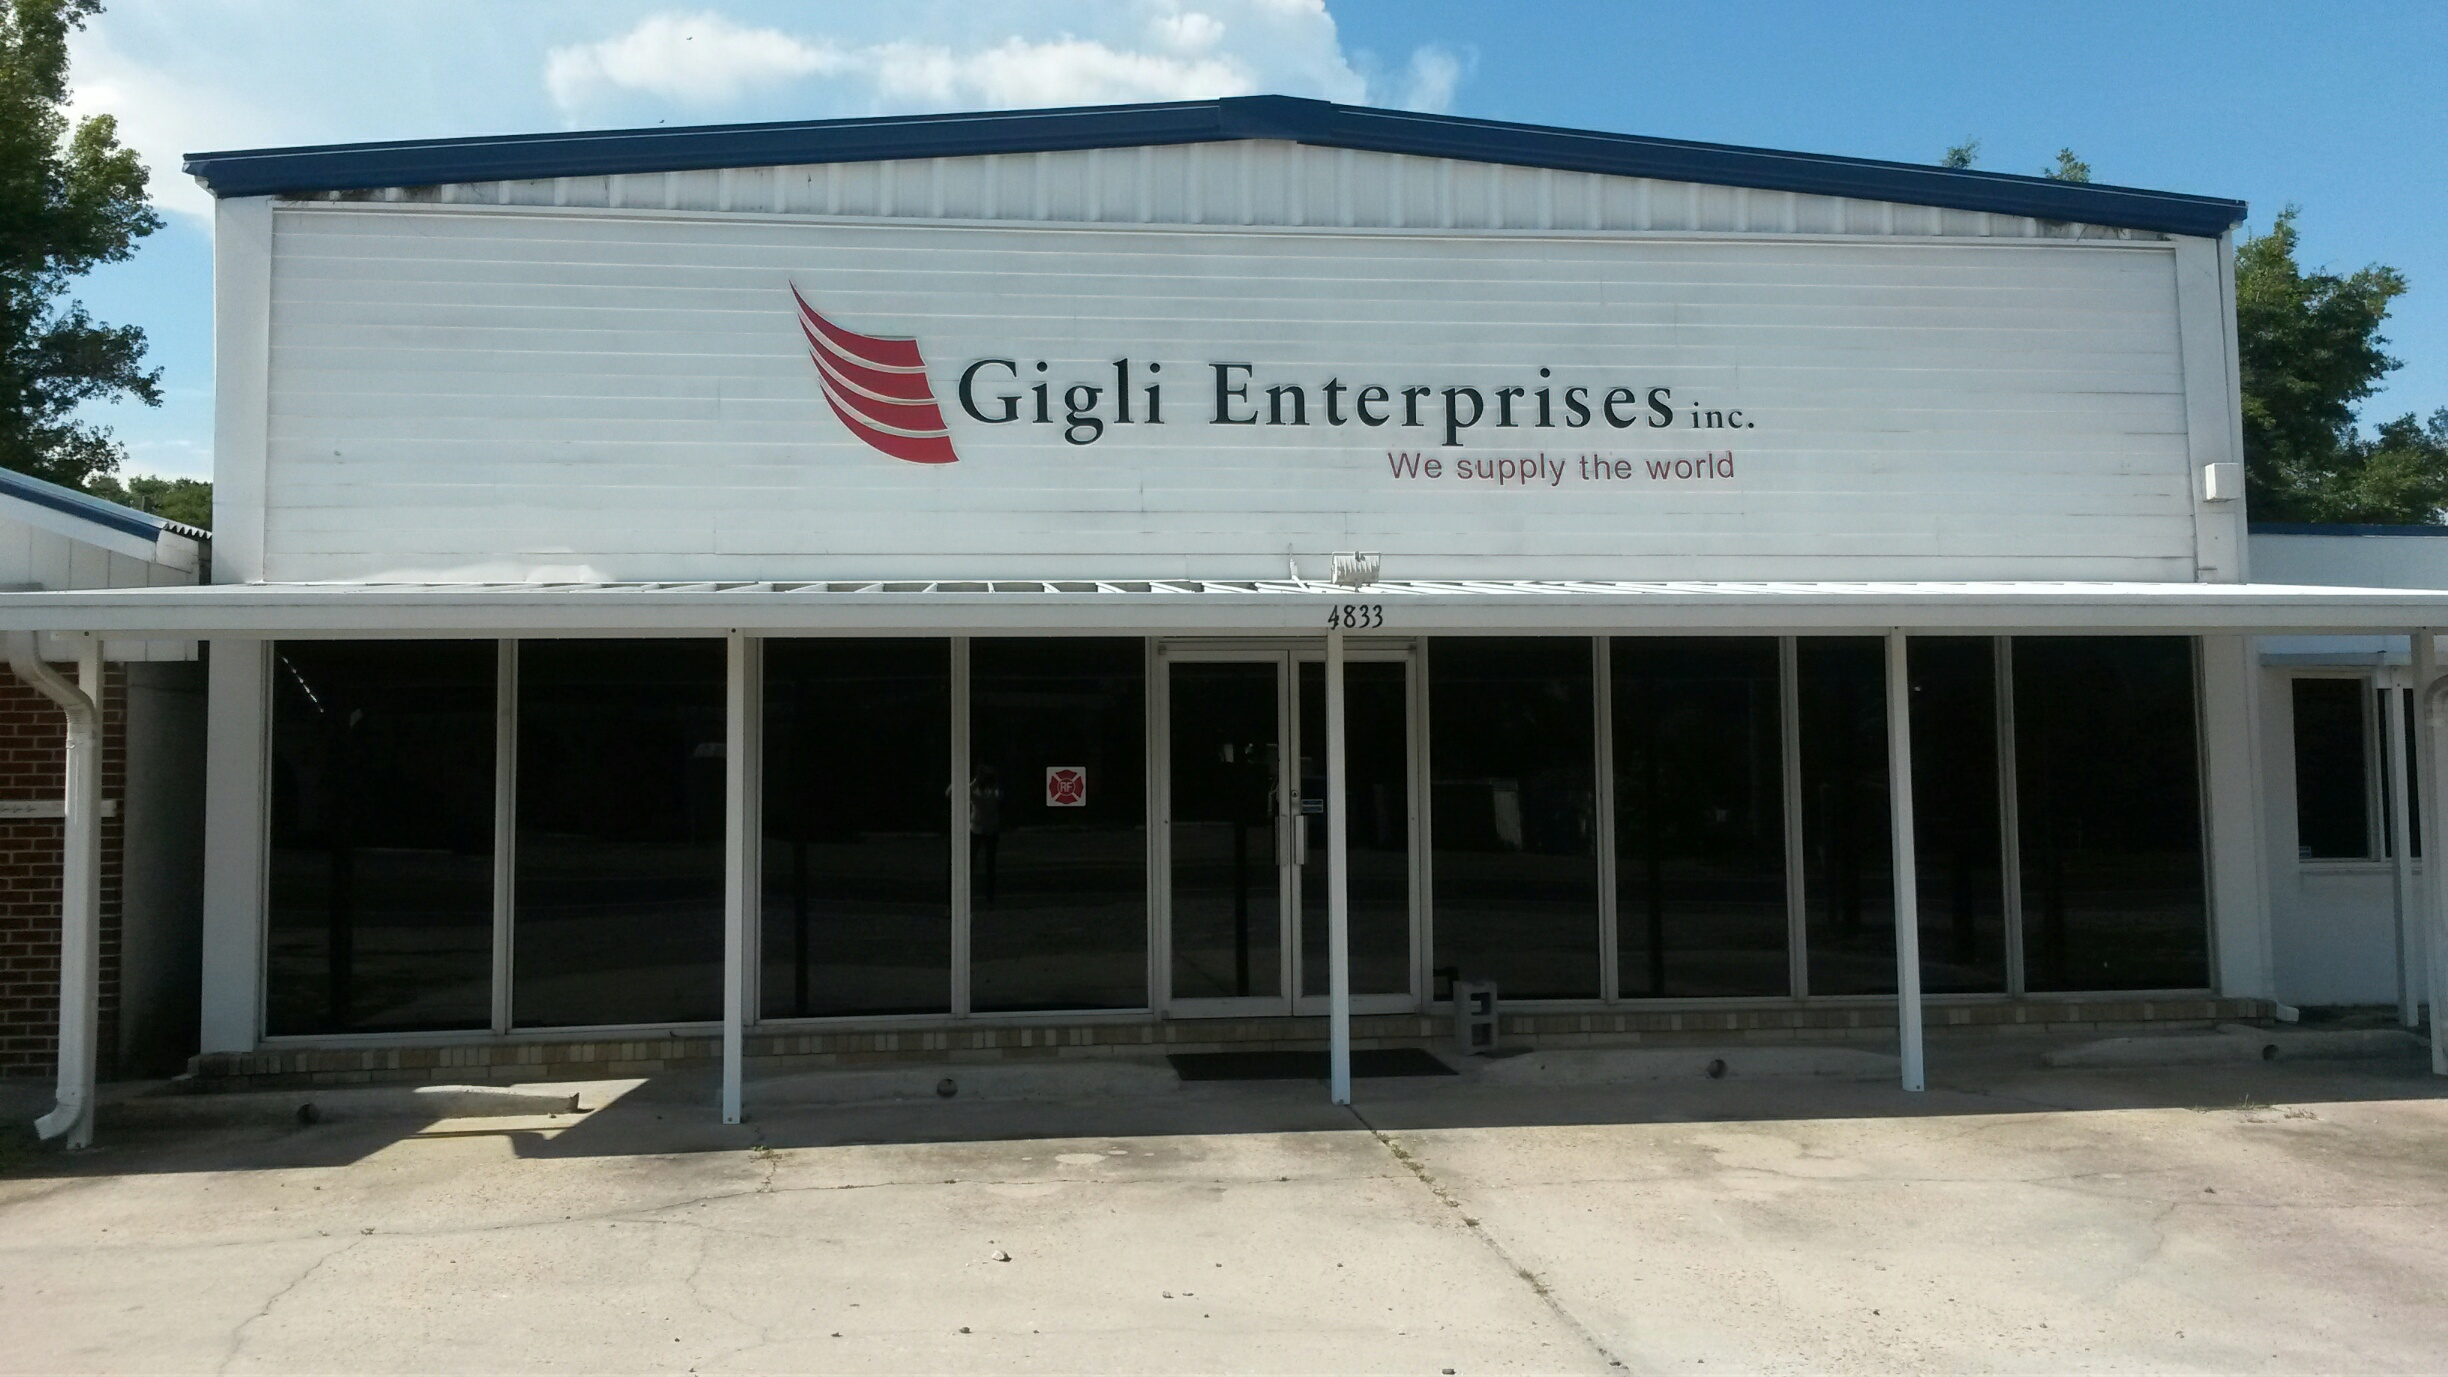 Conveniently located in Panama City, FL, Gigli Enterprises, Inc. is a stocking distribution company operating only minutes from Tyndall AFB and NSA Panama City and a short drive from Eglin AFB, Duke Field, Hurlburt Field, NAS Pensacola, NAS Whiting Field, and Ft. Rucker.